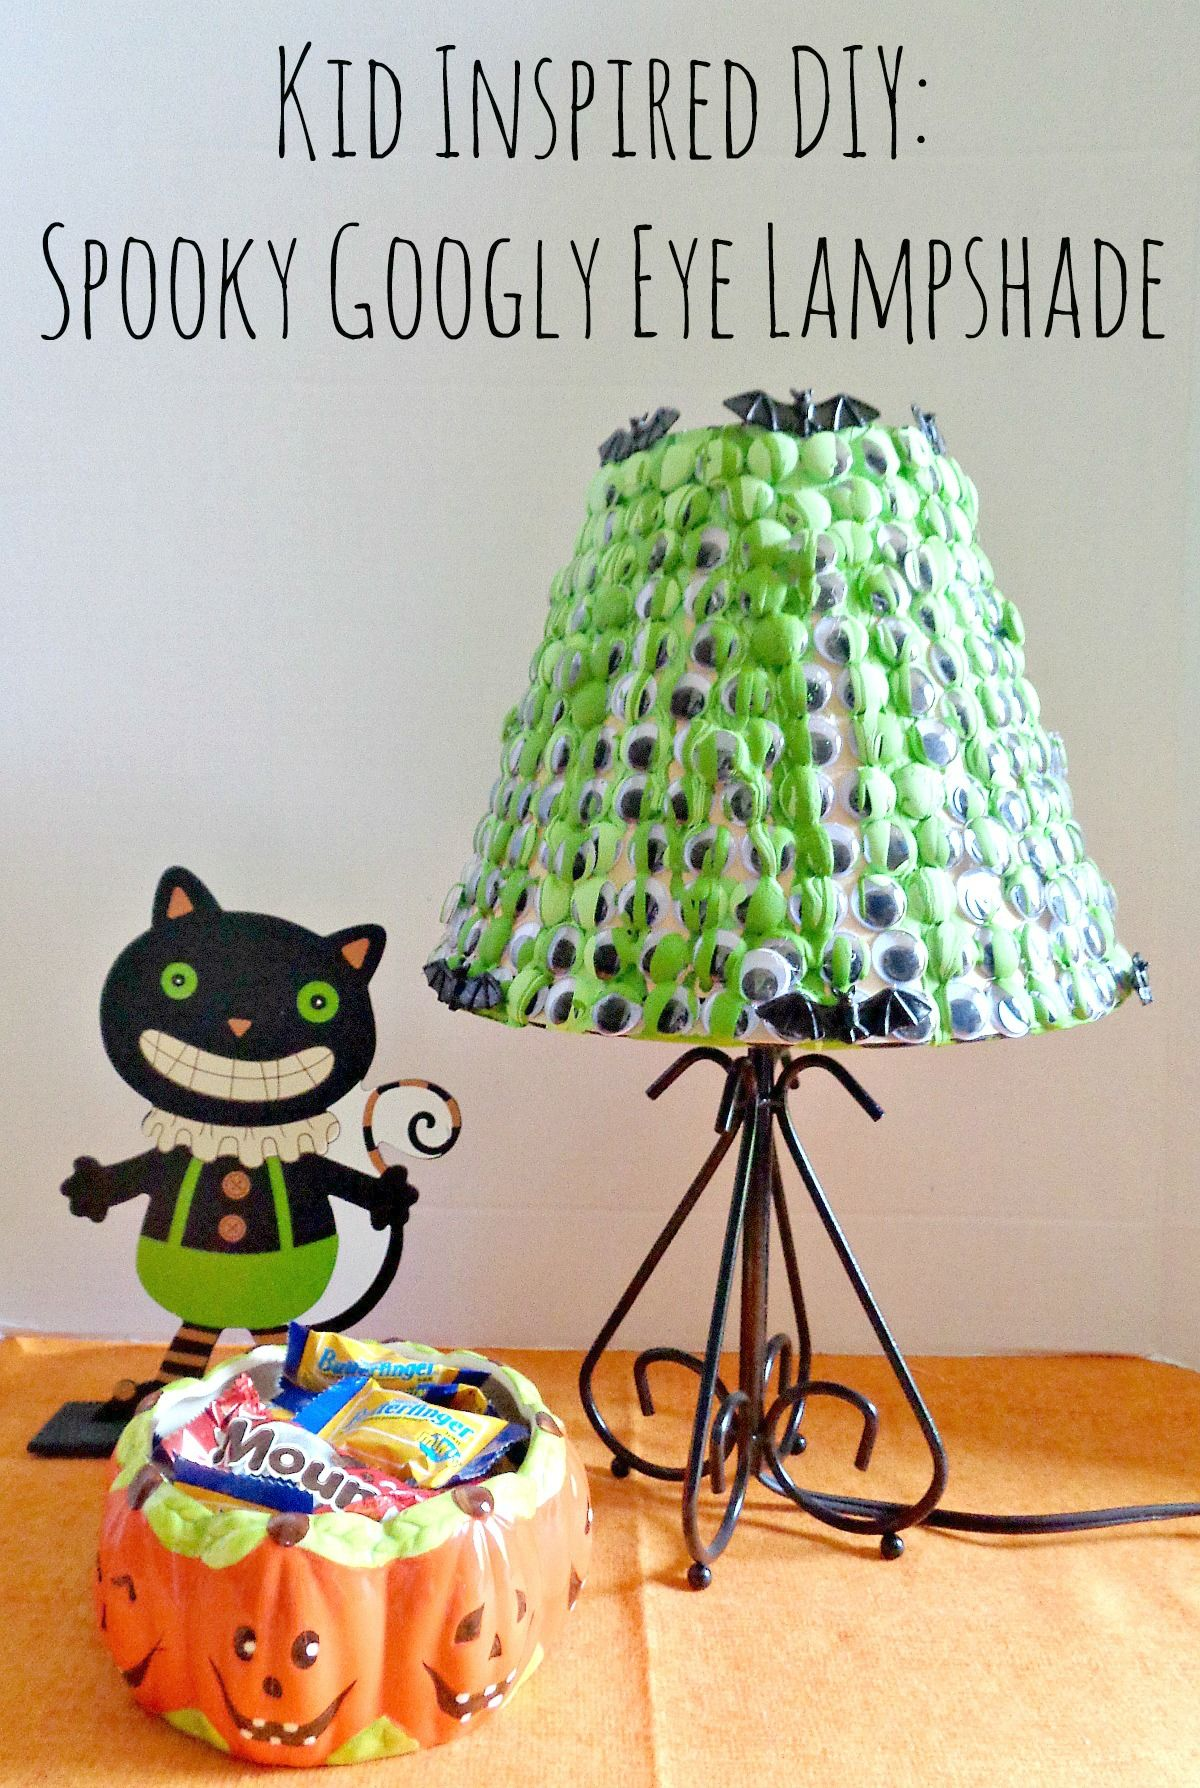 spooky-googly-eye-lampshade